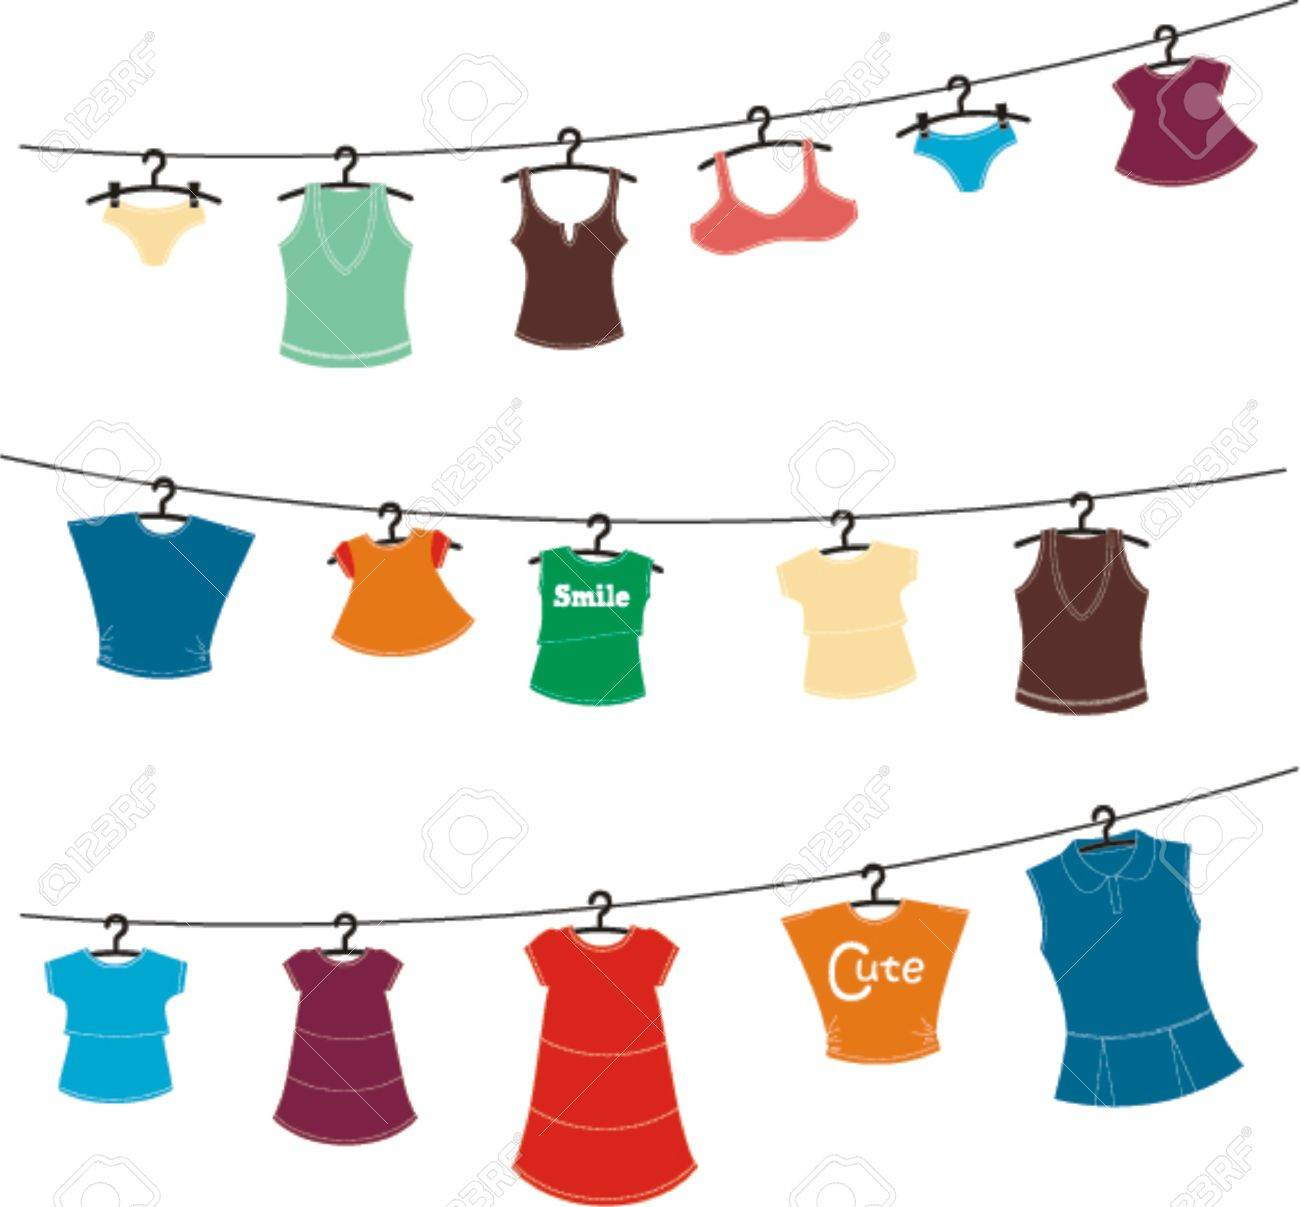 women clothes on washing line.